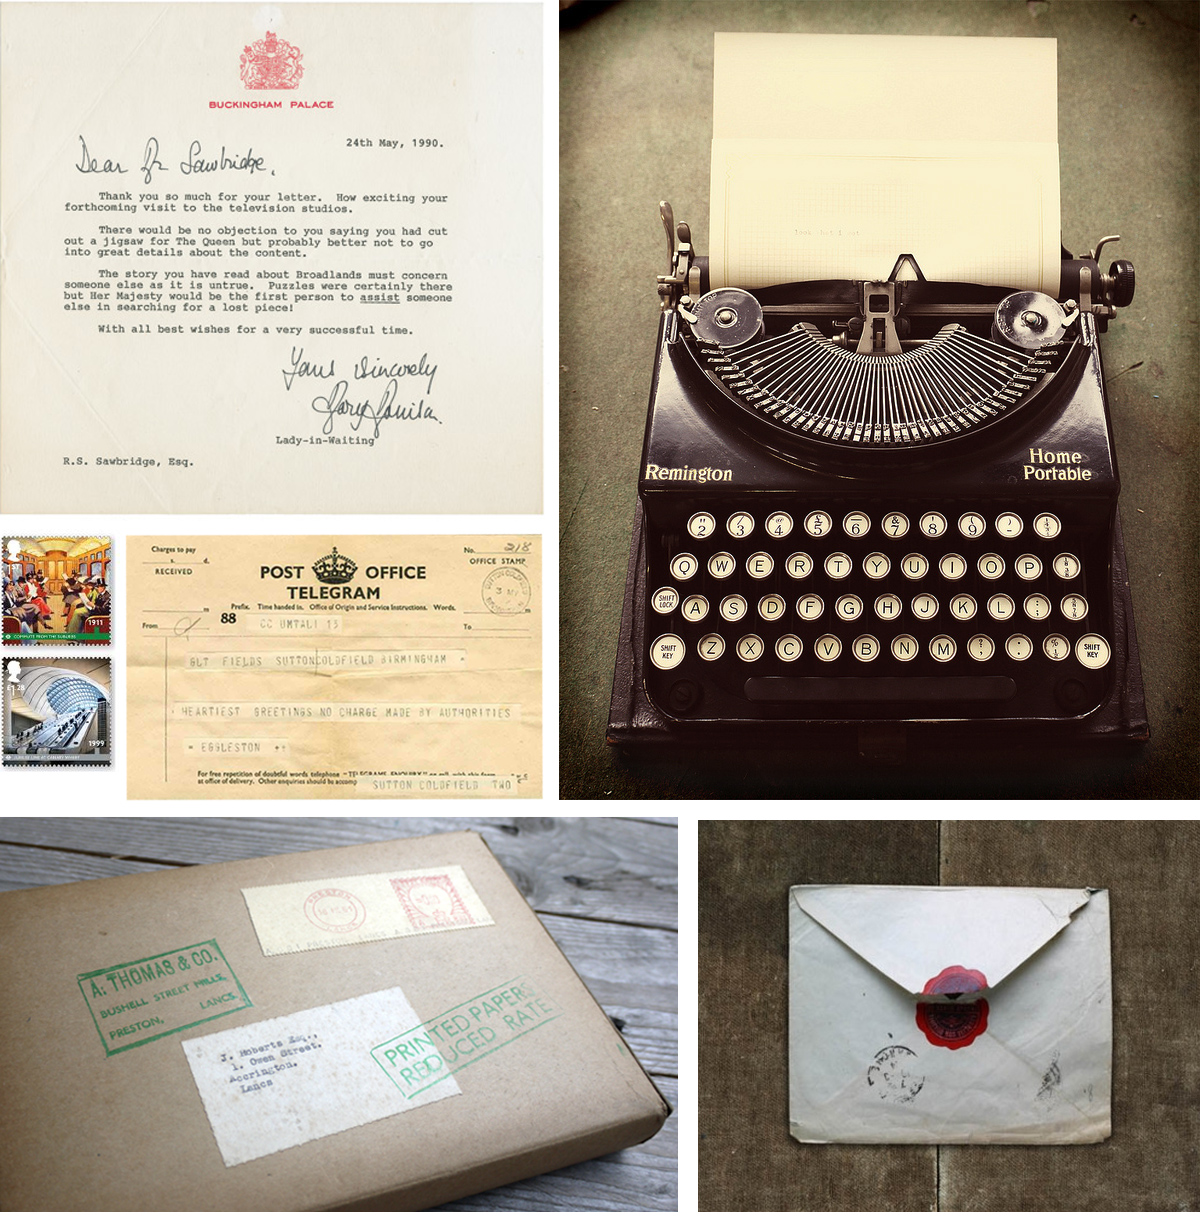 typewriter   my new toy, a fabulous gift from a family friend /   typed letter   /   London Underground stamps   /   telegram   /   wax seal envelope   / found vintage postal box from my vintage ephemera collection